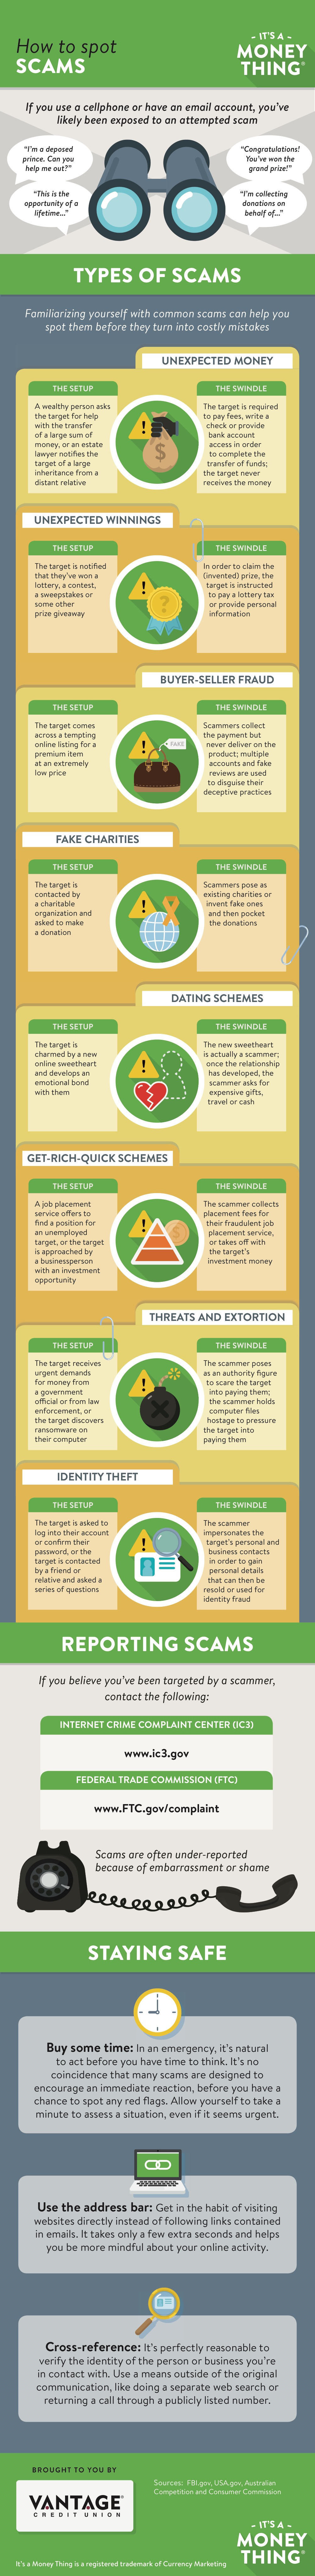 How-to-spot-scams-infographic